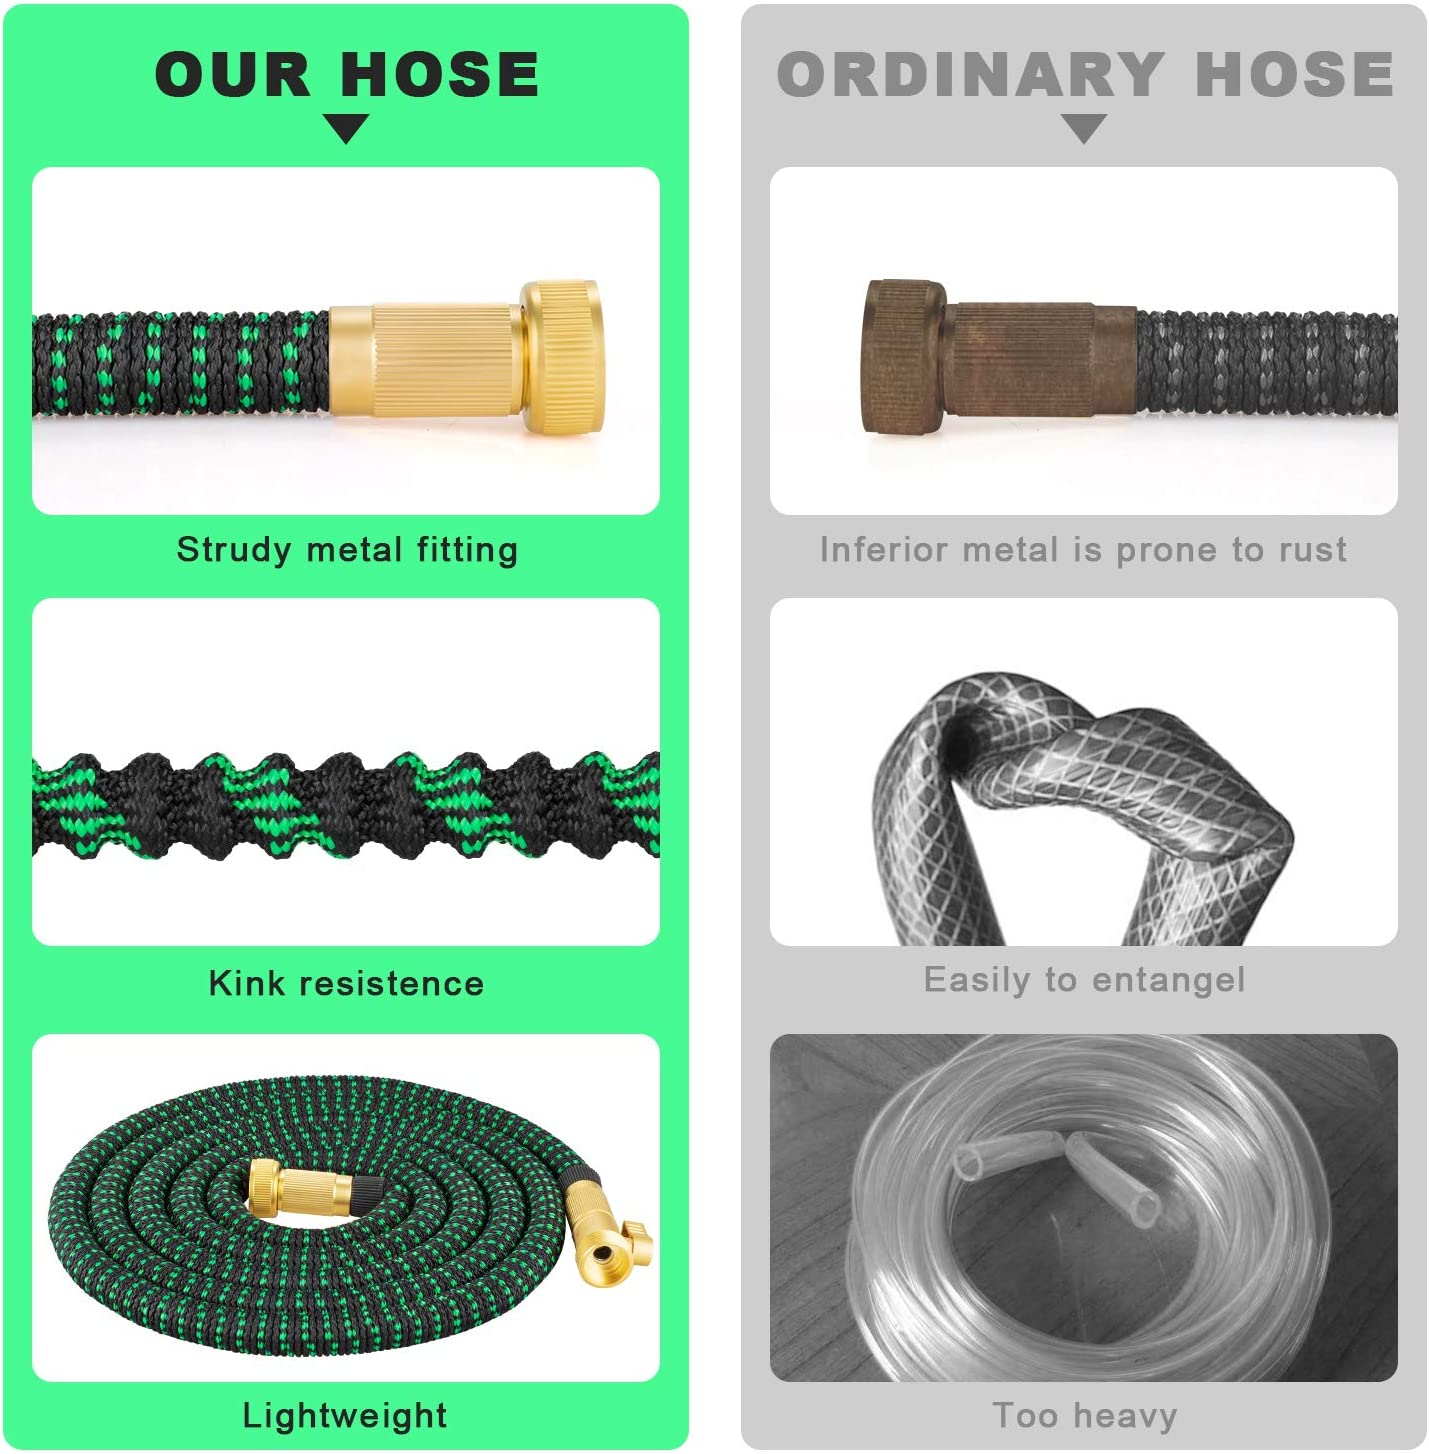 Zalotte Expandable Garden Hose with 9 Function Nozzle, Leakproof Lightweight Expanding Garden Water Hose with Solid Brass Fittings, Extra Strength 3750D Durable Gardening Flexible Hose Pipe(25ft) : Garden & Outdoor